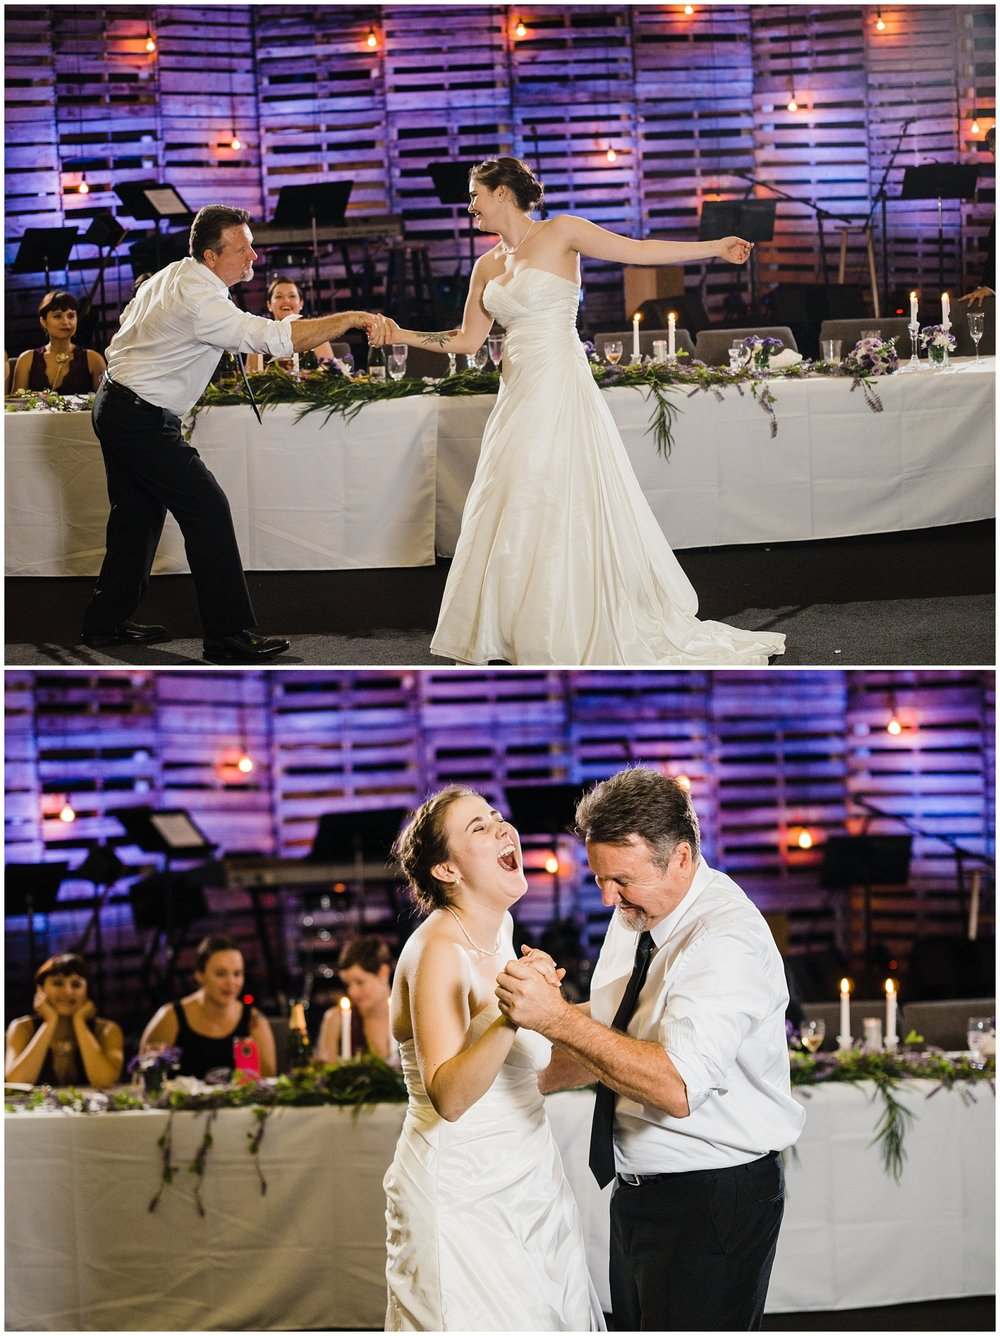 The daddy/daughter dance gets us every time! These two were so much fun to watch. They both have the most amazing sense of humor. Each time we watch these tho, we know we are one step closer to giving our girls away and have to remind ourselves to keep on breathing (and cherishing each little moment with them).